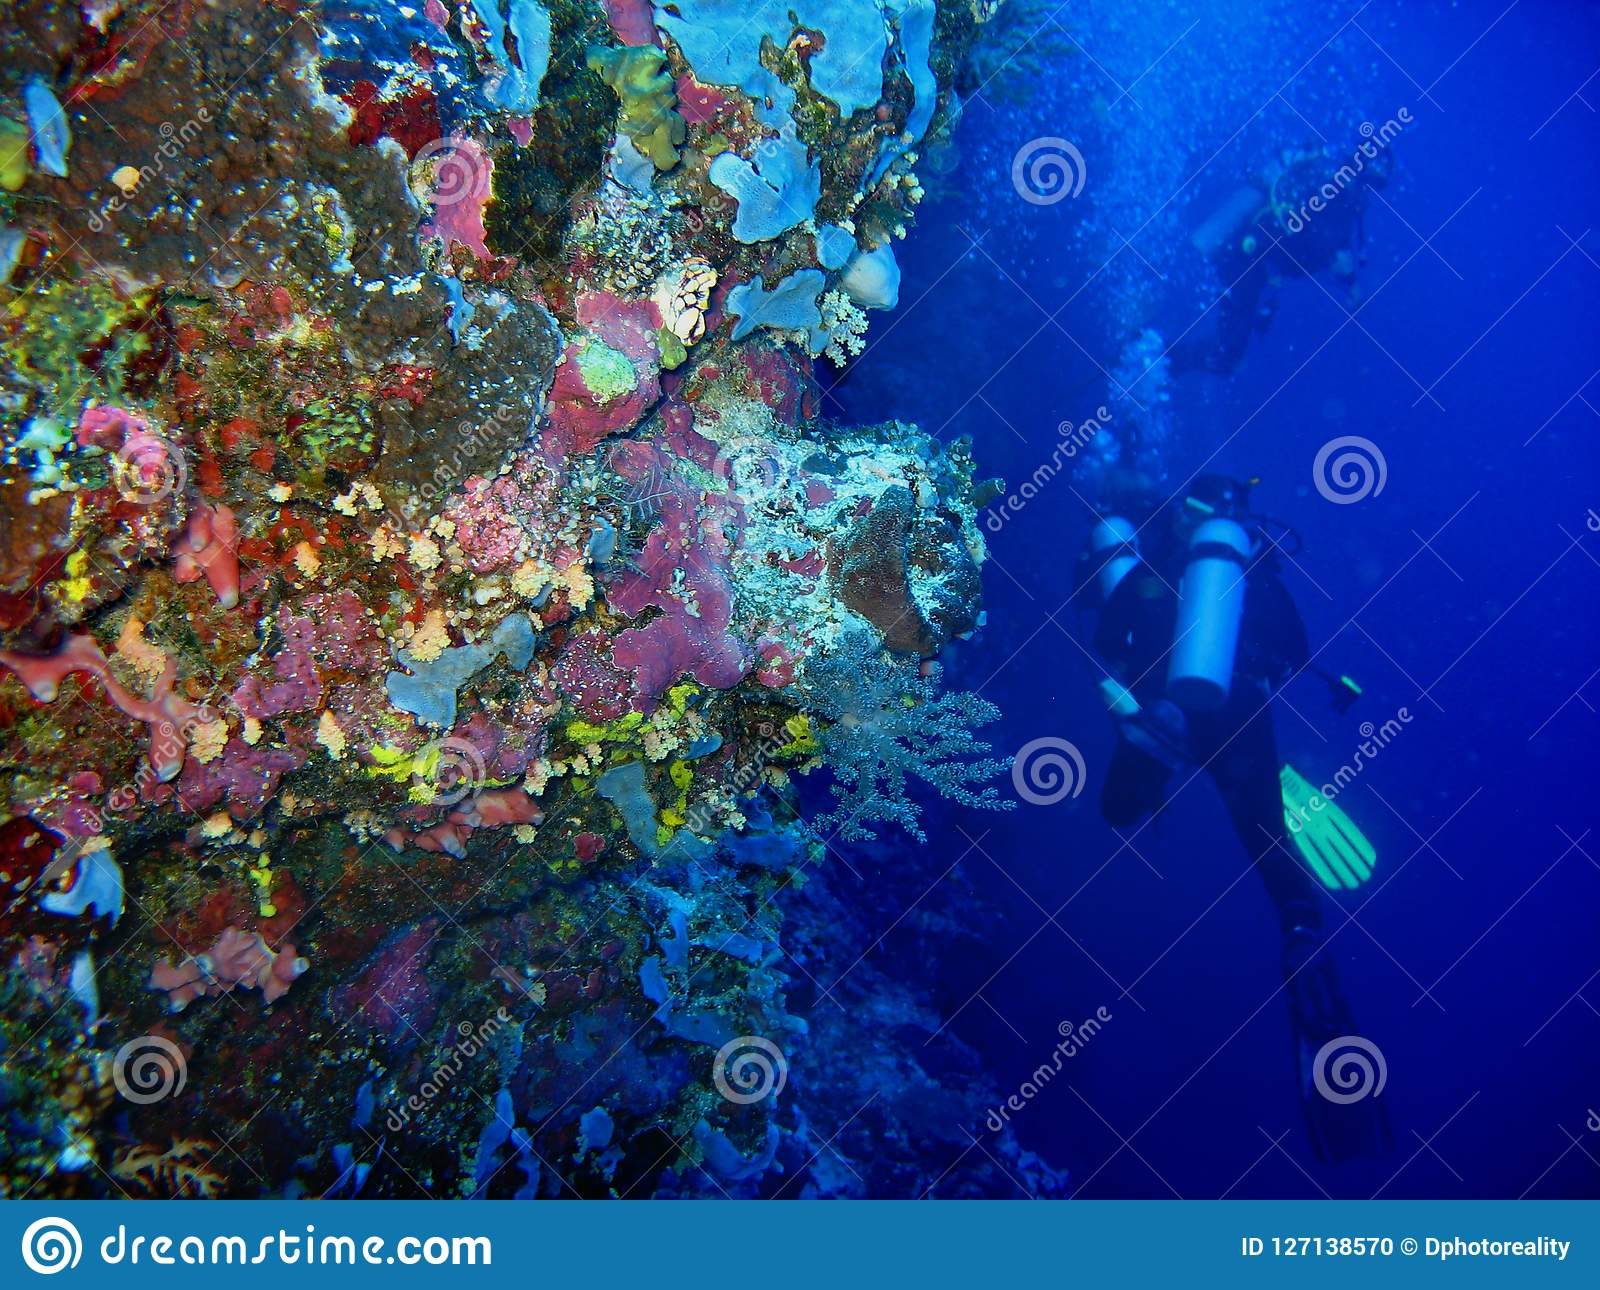 The photo of underwater wild coral on the foreground and two scuba divers are on the blue clean water background.